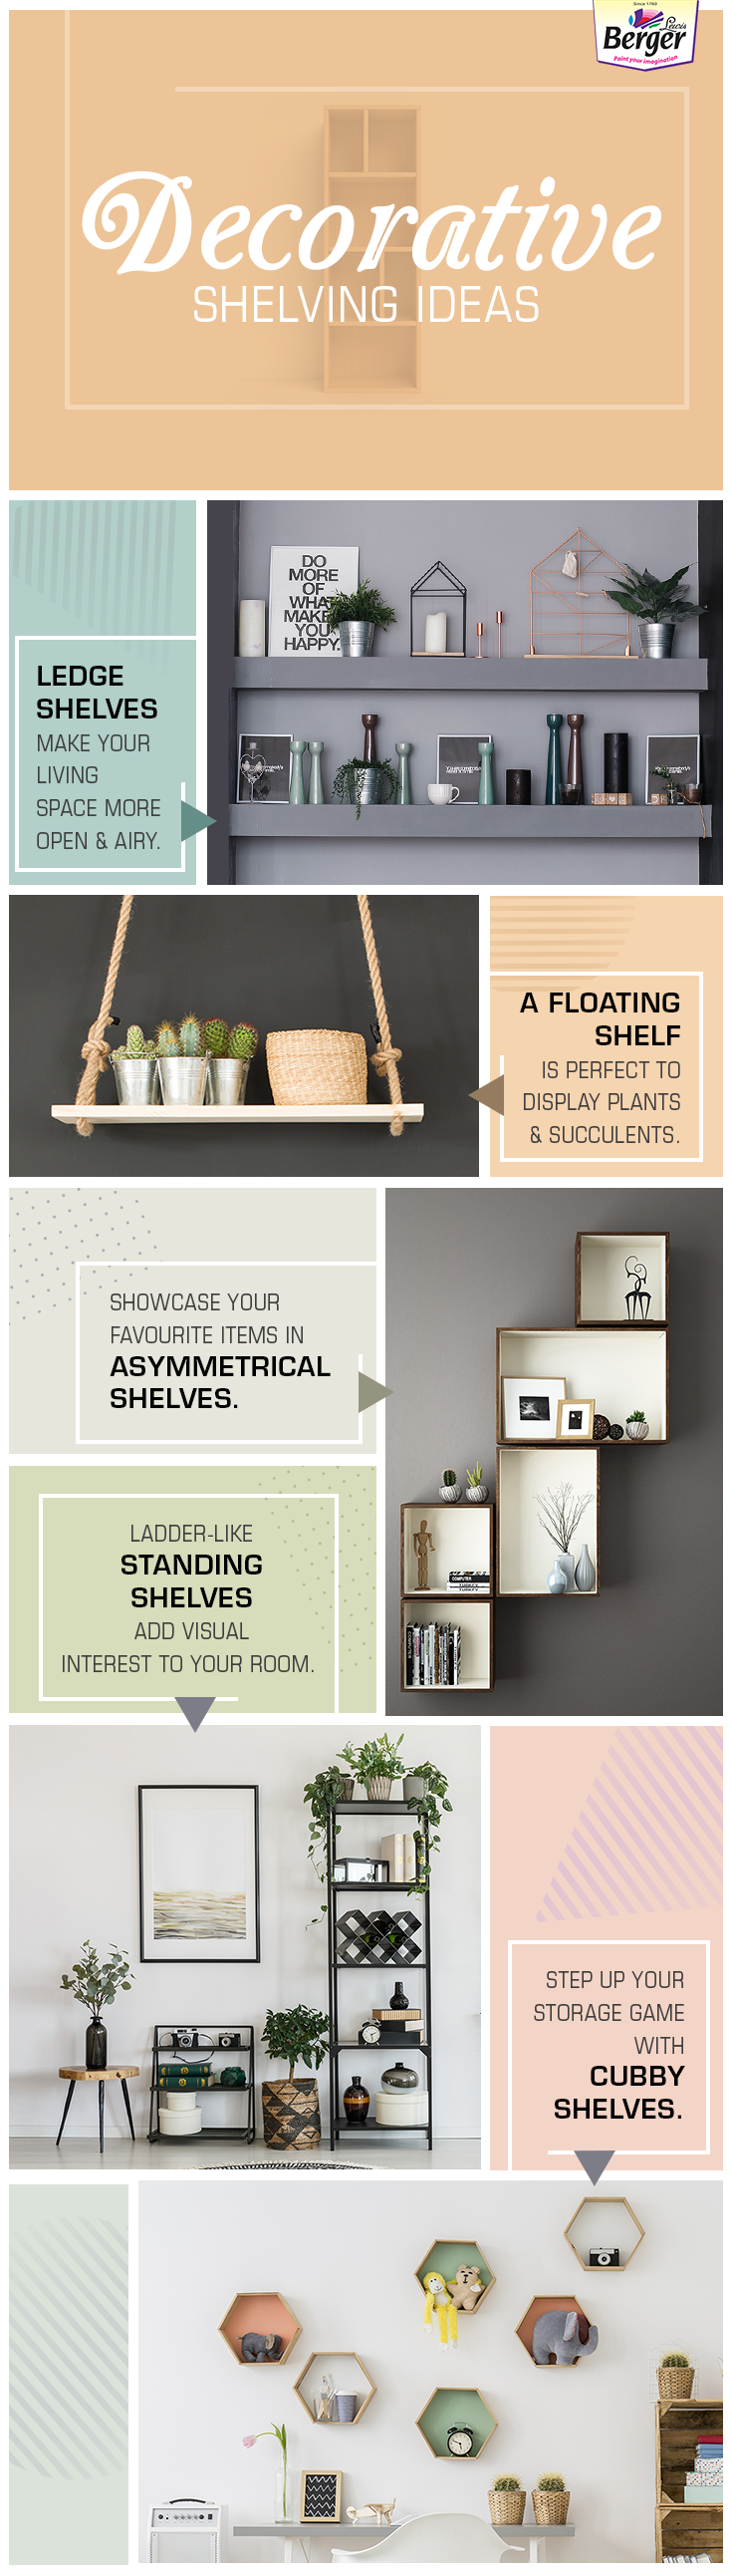 Creative ideas that help you display items in a beautiful way while making your space lighter and bigger.